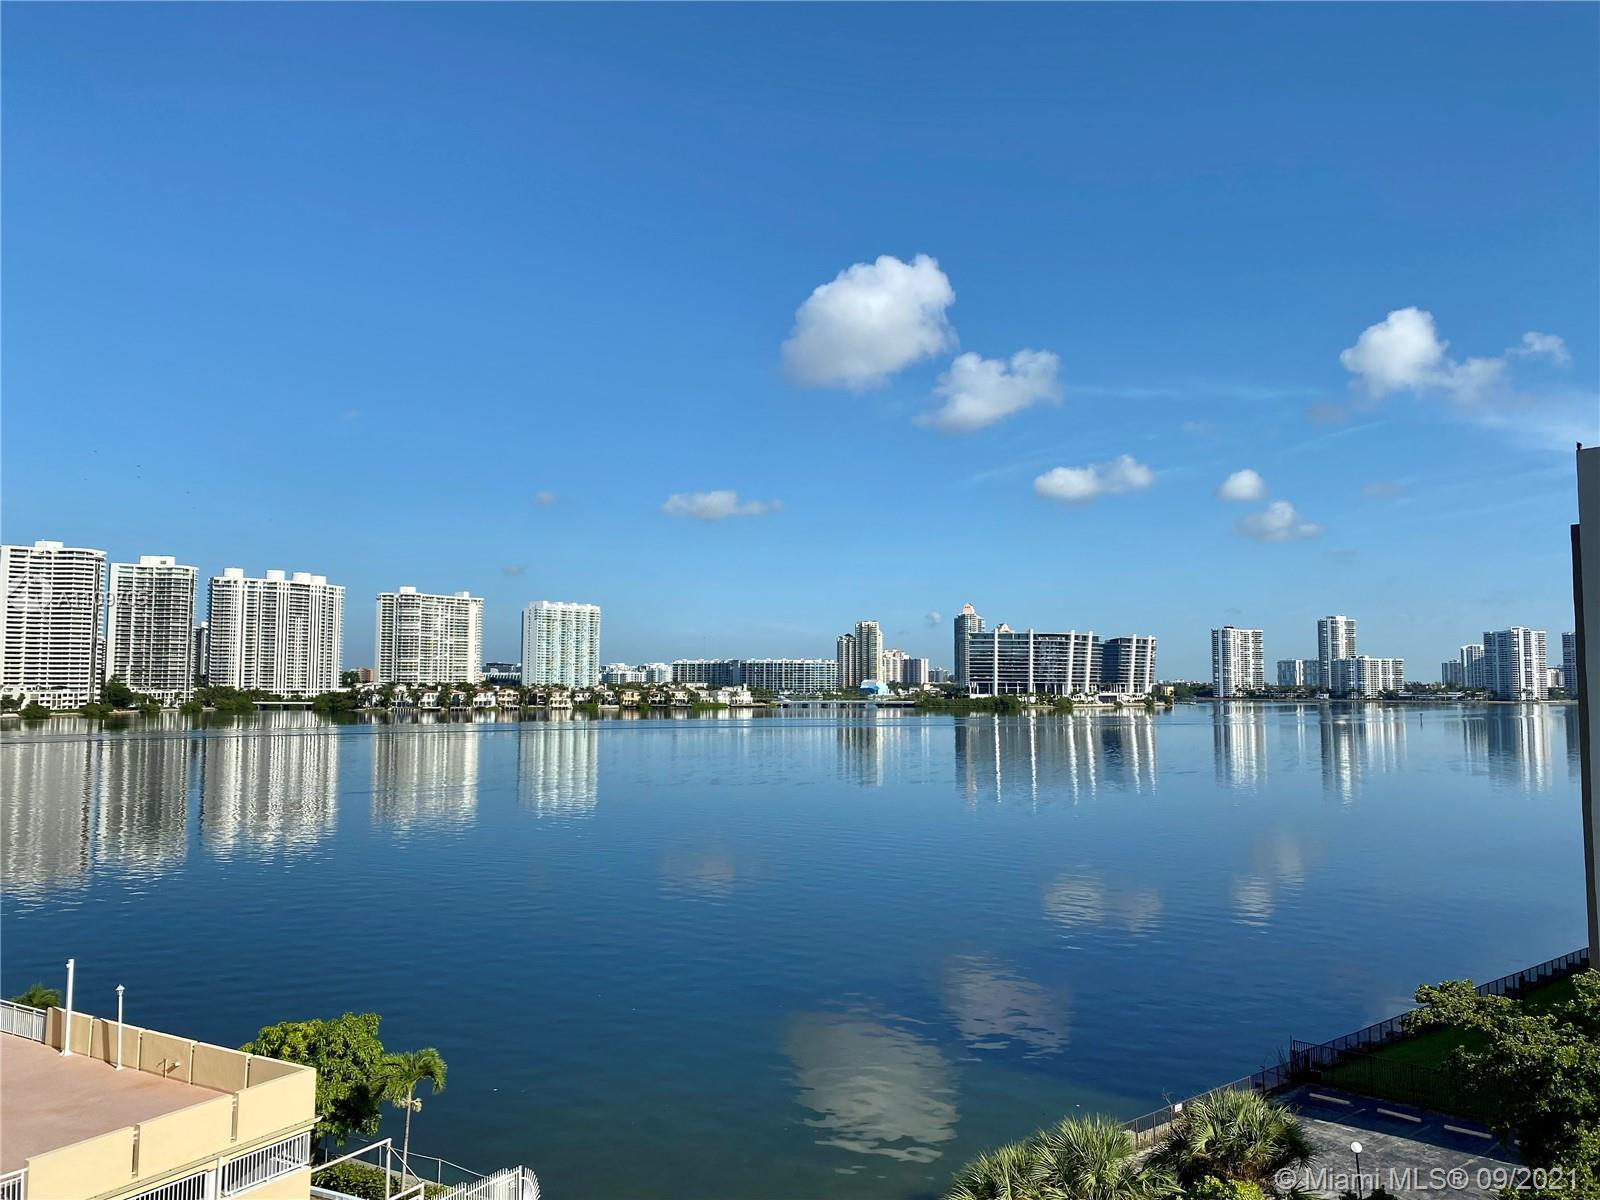 Corner apartment 2B/2B at Winston Towers 200. Large 1860sq ft condo with balcony, views of the Bay a